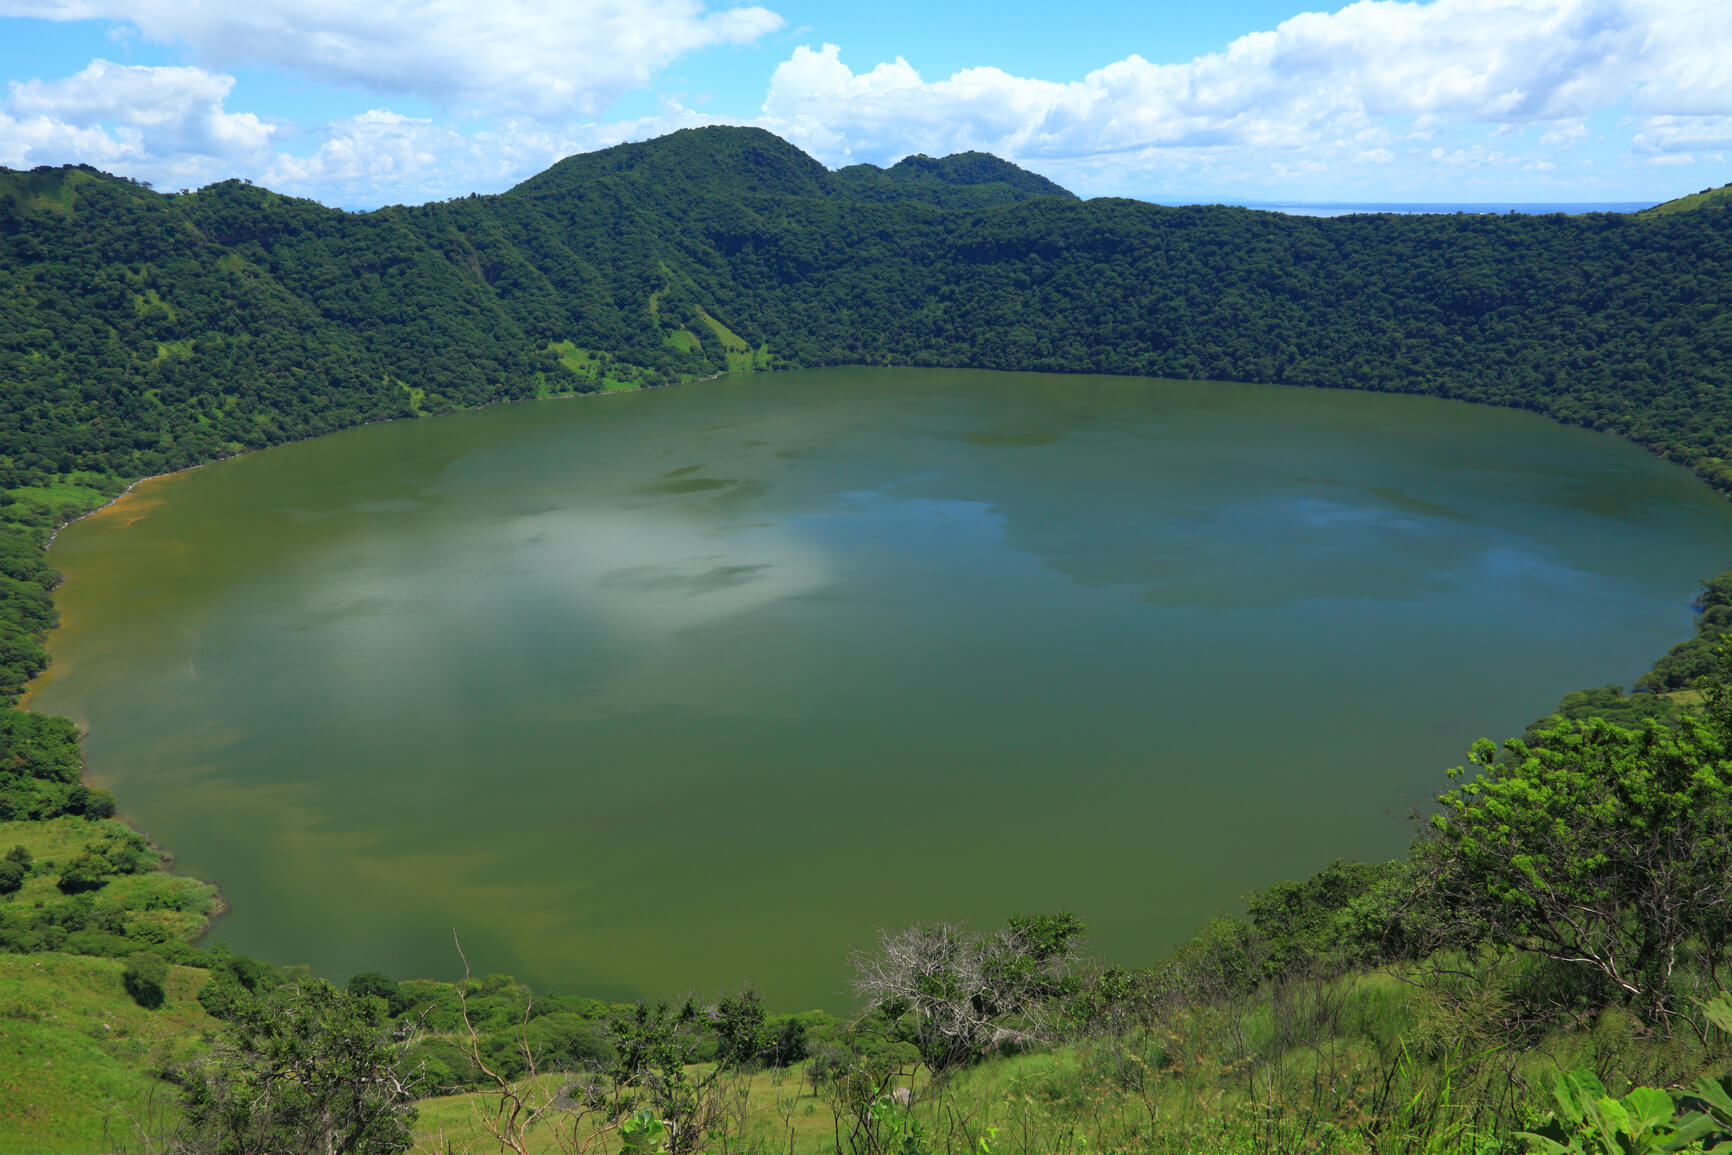 Dallas, Texas to Managua, Nicaragua for only $285 roundtrip (Sep-Mar dates)